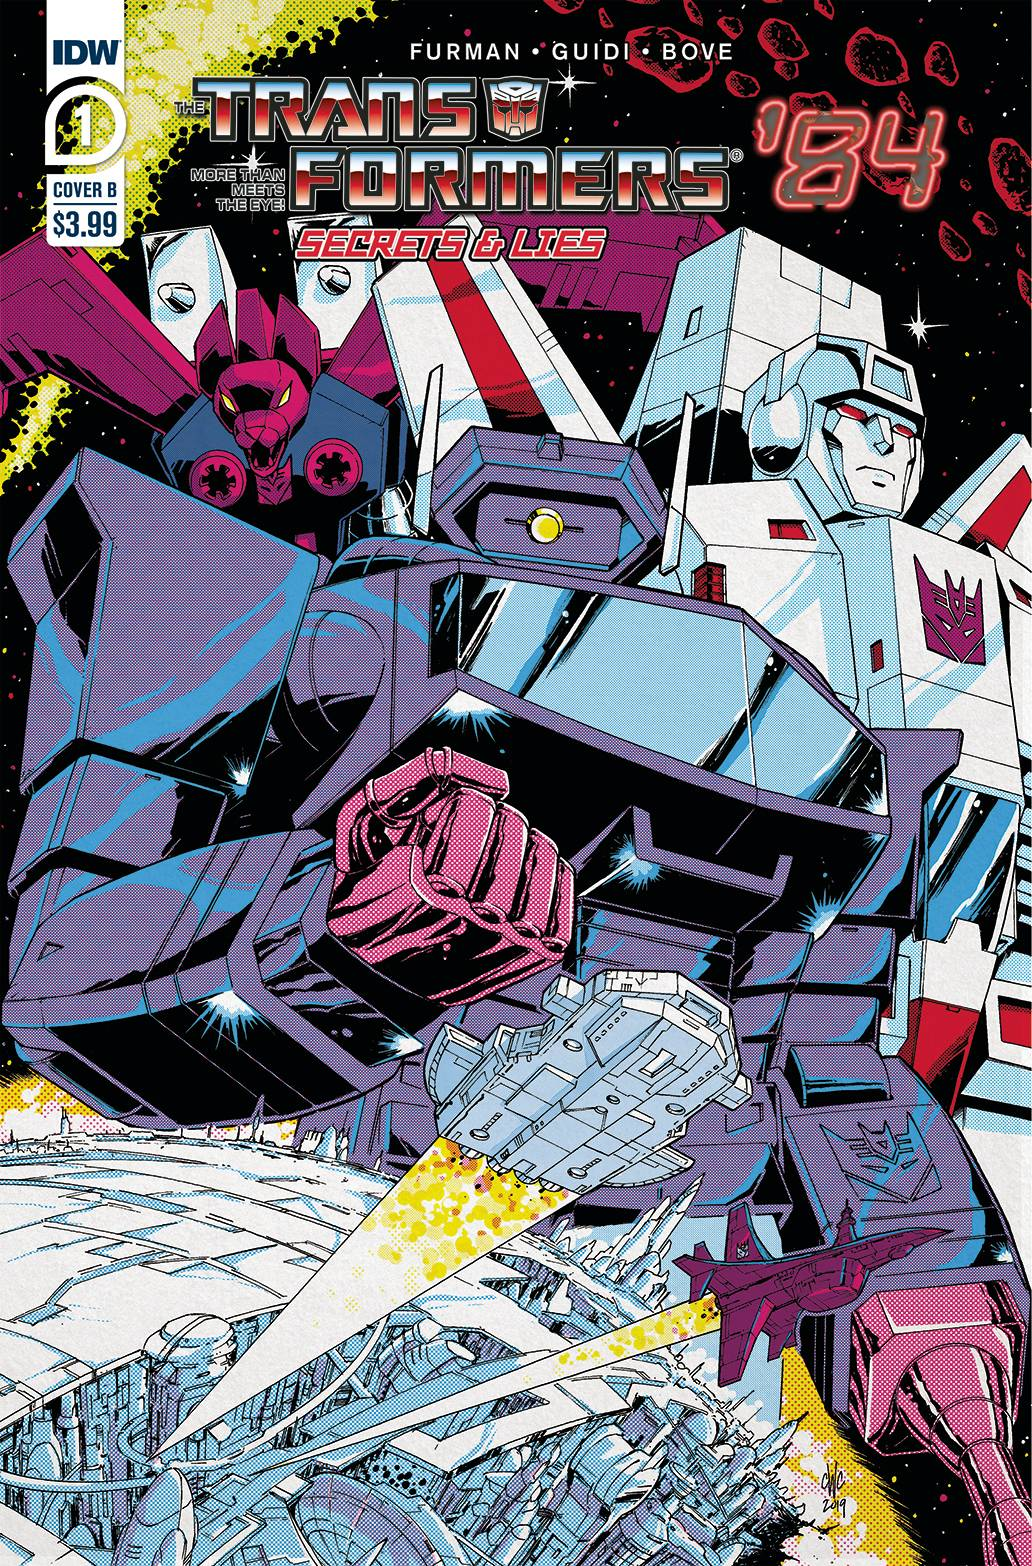 787836_transformers-84-secrets-lies-1-cover-b-coller ComicList: IDW Publishing New Releases for 07/15/2020